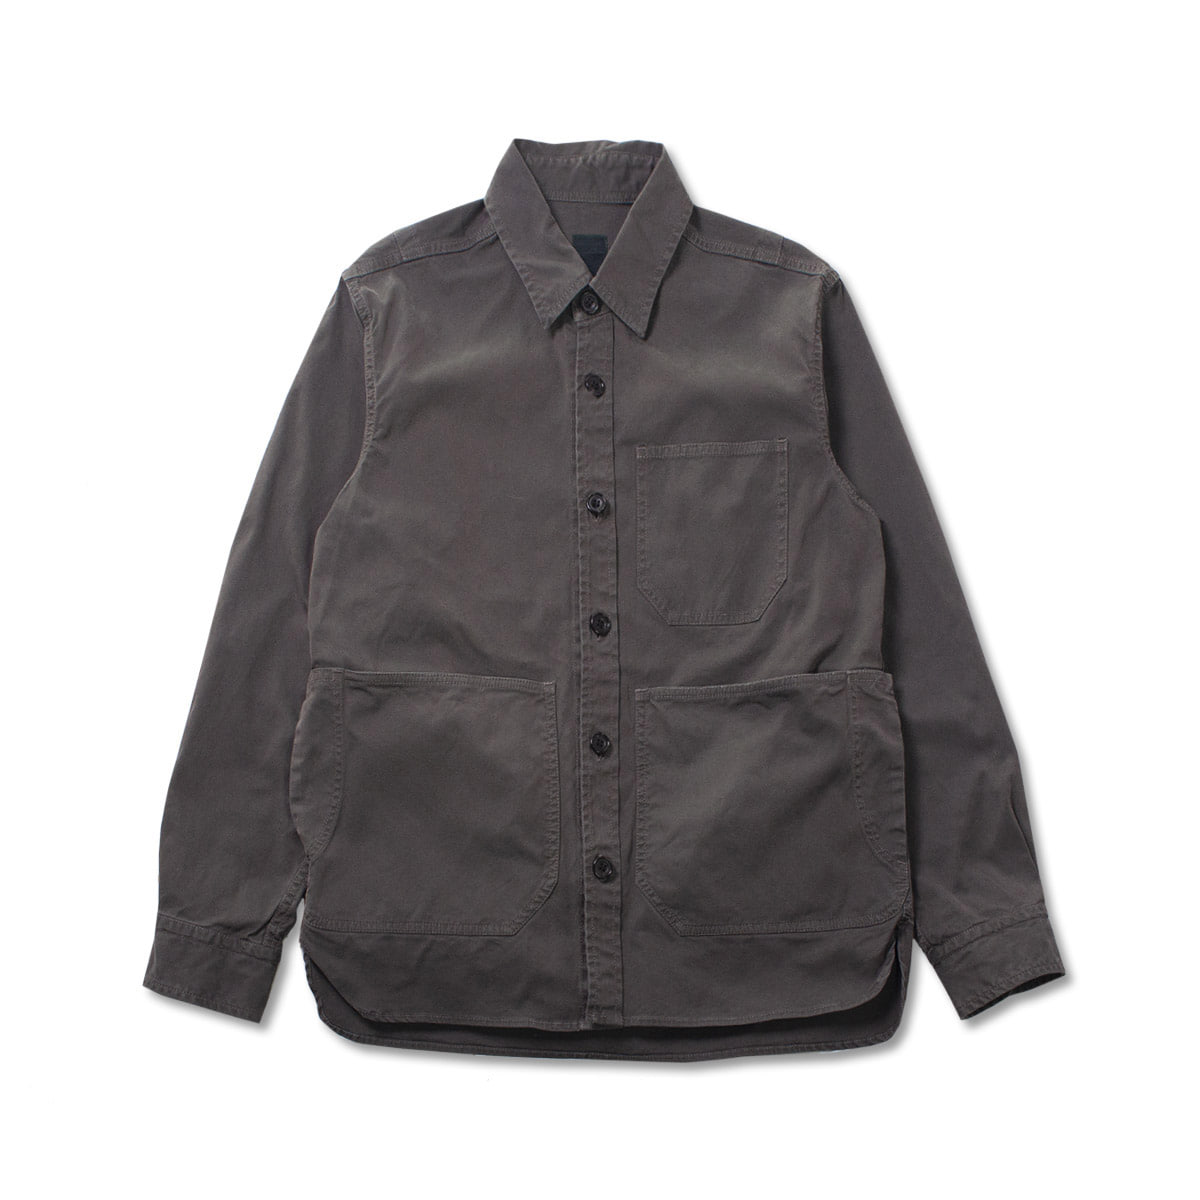 [SAGE DE CRET] SHIRT JACKET 'CHARCOAL'